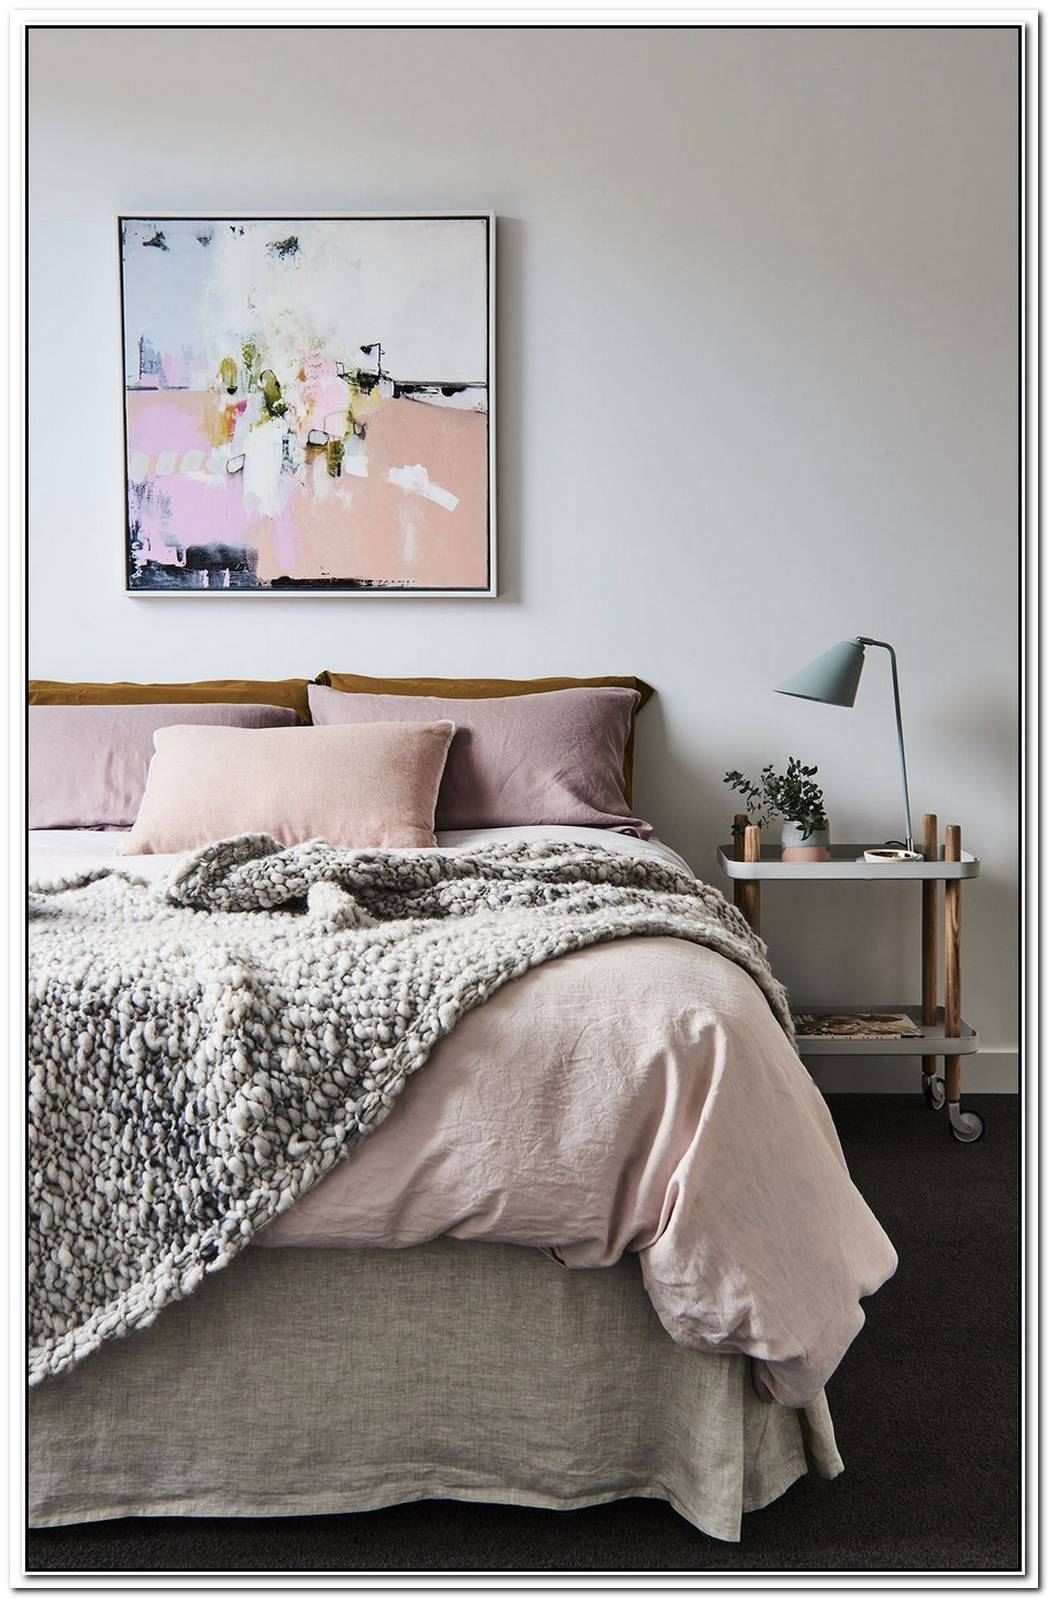 Sophisticated Pastels And Whimsical Accents Elevate A Dreamy Bedroom